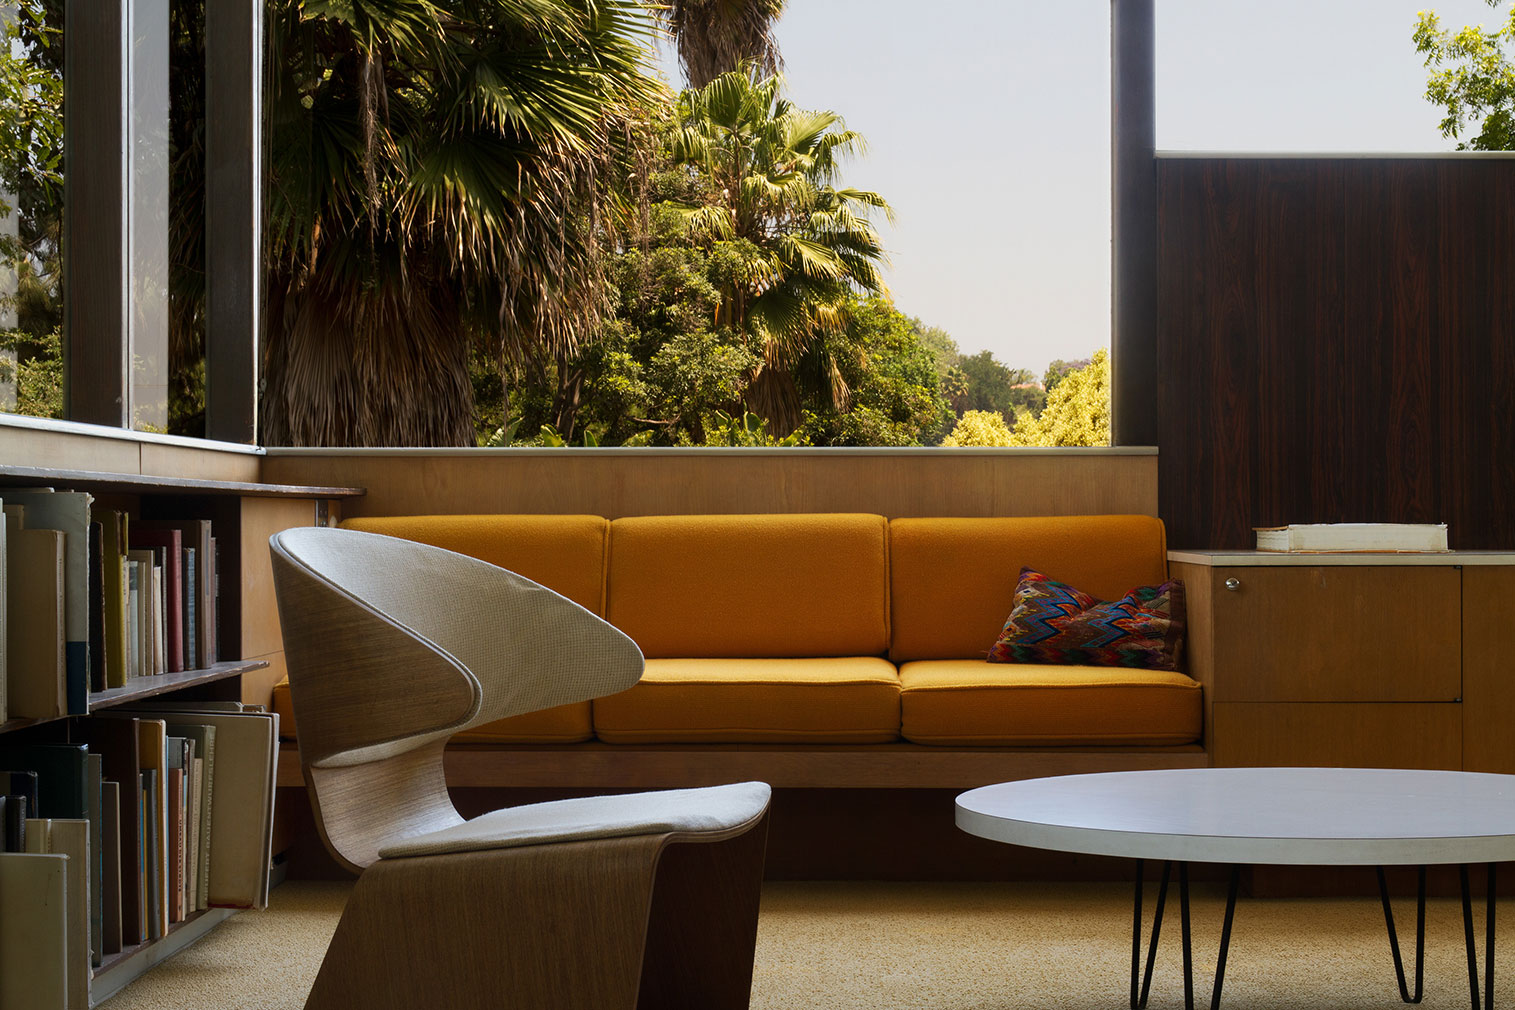 Architects homes you can visit including Richard Neutra's VDL Studio and residence